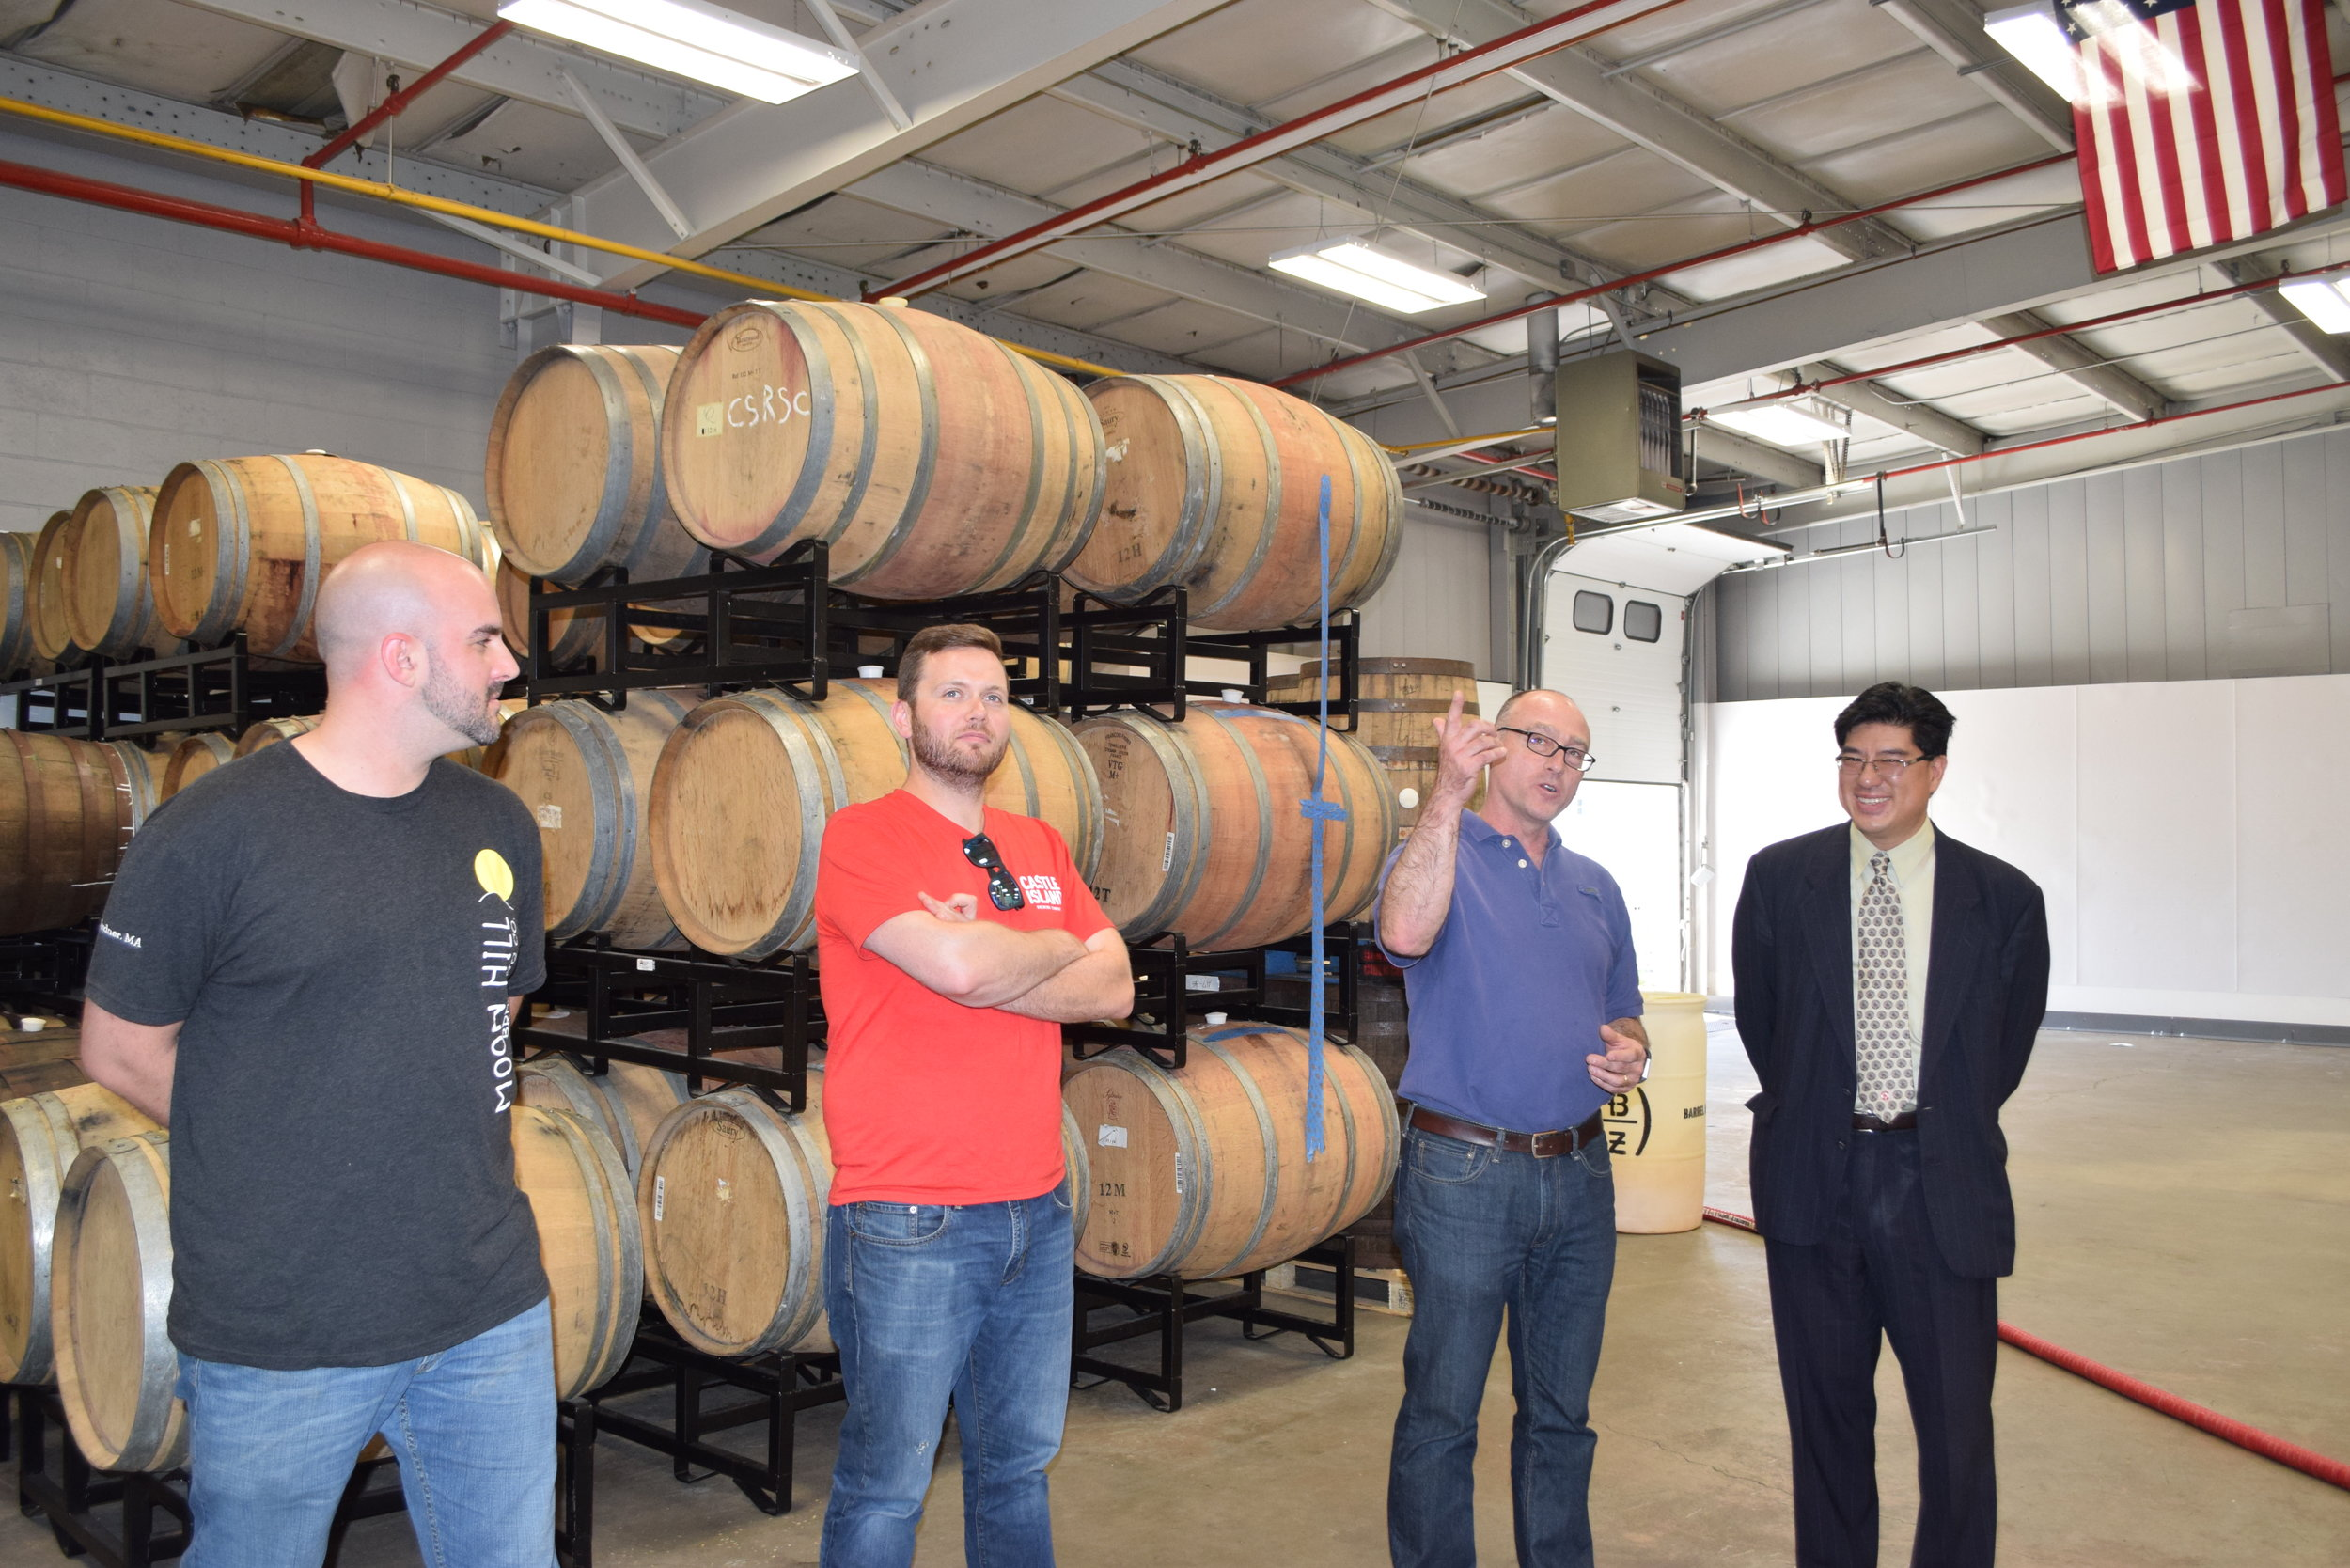 Ryan Daigle, MBG Board members and head brewer at Moon Hill, Adam Romanow, co-founder of Castle Island, Russ Heissner, founder of Barrel House Z and Chair Tackey Chan talk about the booming craft beer industry in Massachusetts.